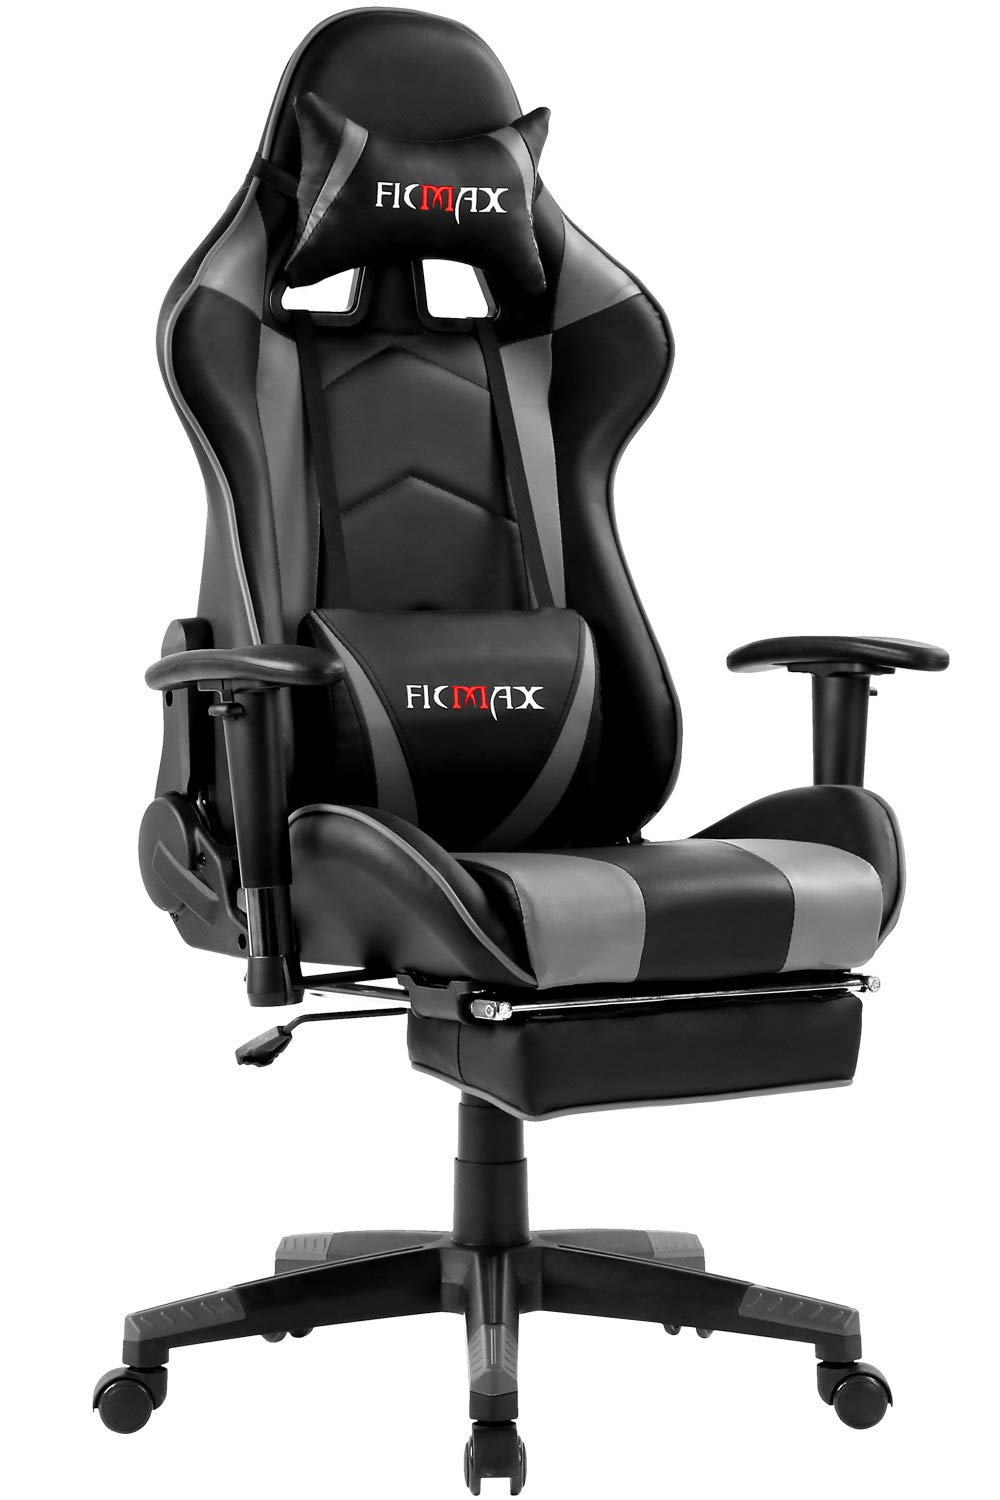 Ficmax Ergonomic Gaming Chair Massage Computer Gaming Chair Reclining Racing Office Chair with Footrest Pro Gamer E-Sport Chair High Back Gaming Desk Chair with Headrest and Lumbar Support(Black/Gray) by Ficmax